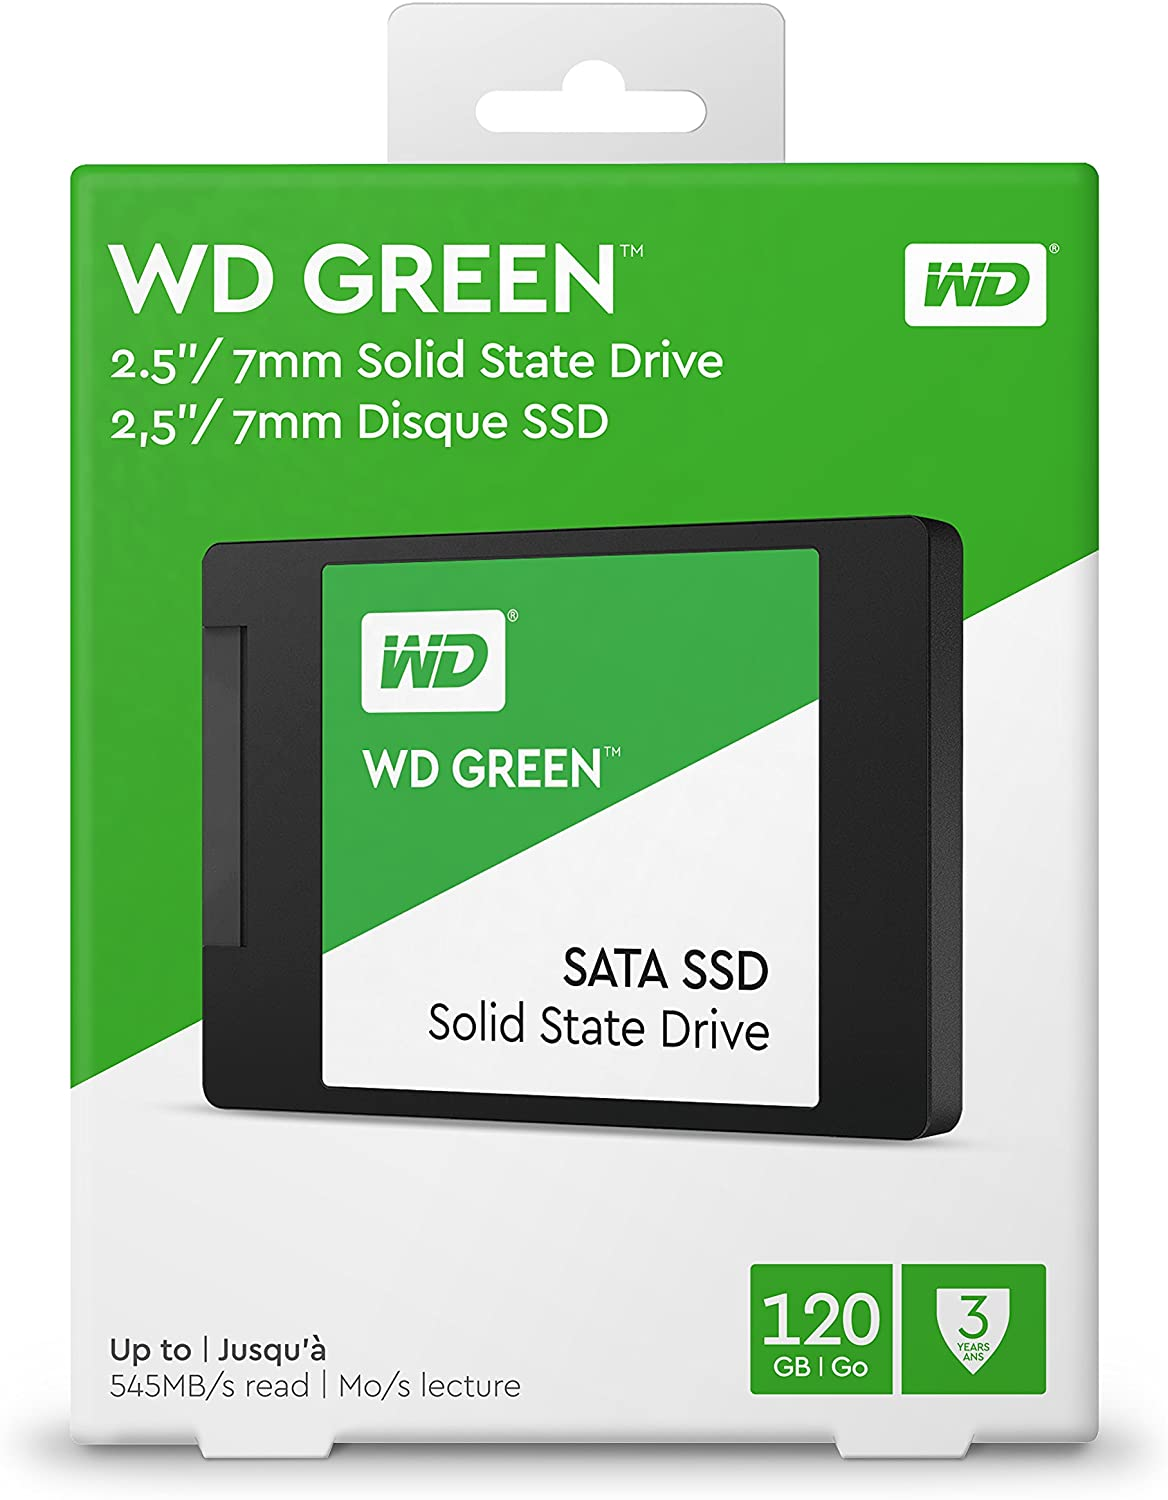 wd-green-120-feature